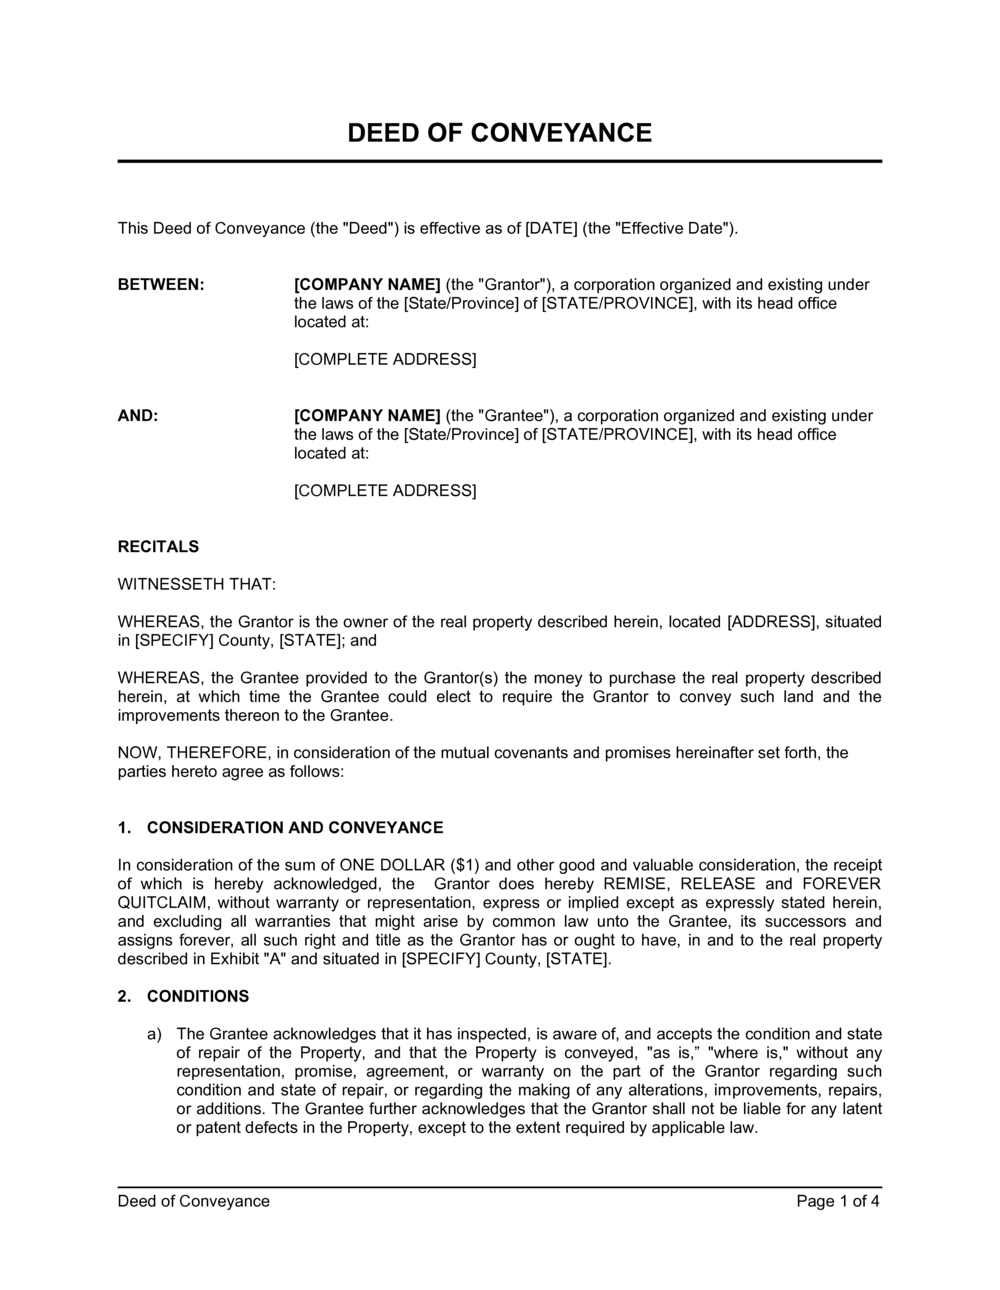 Business-in-a-Box's Deed Of Conveyance Template